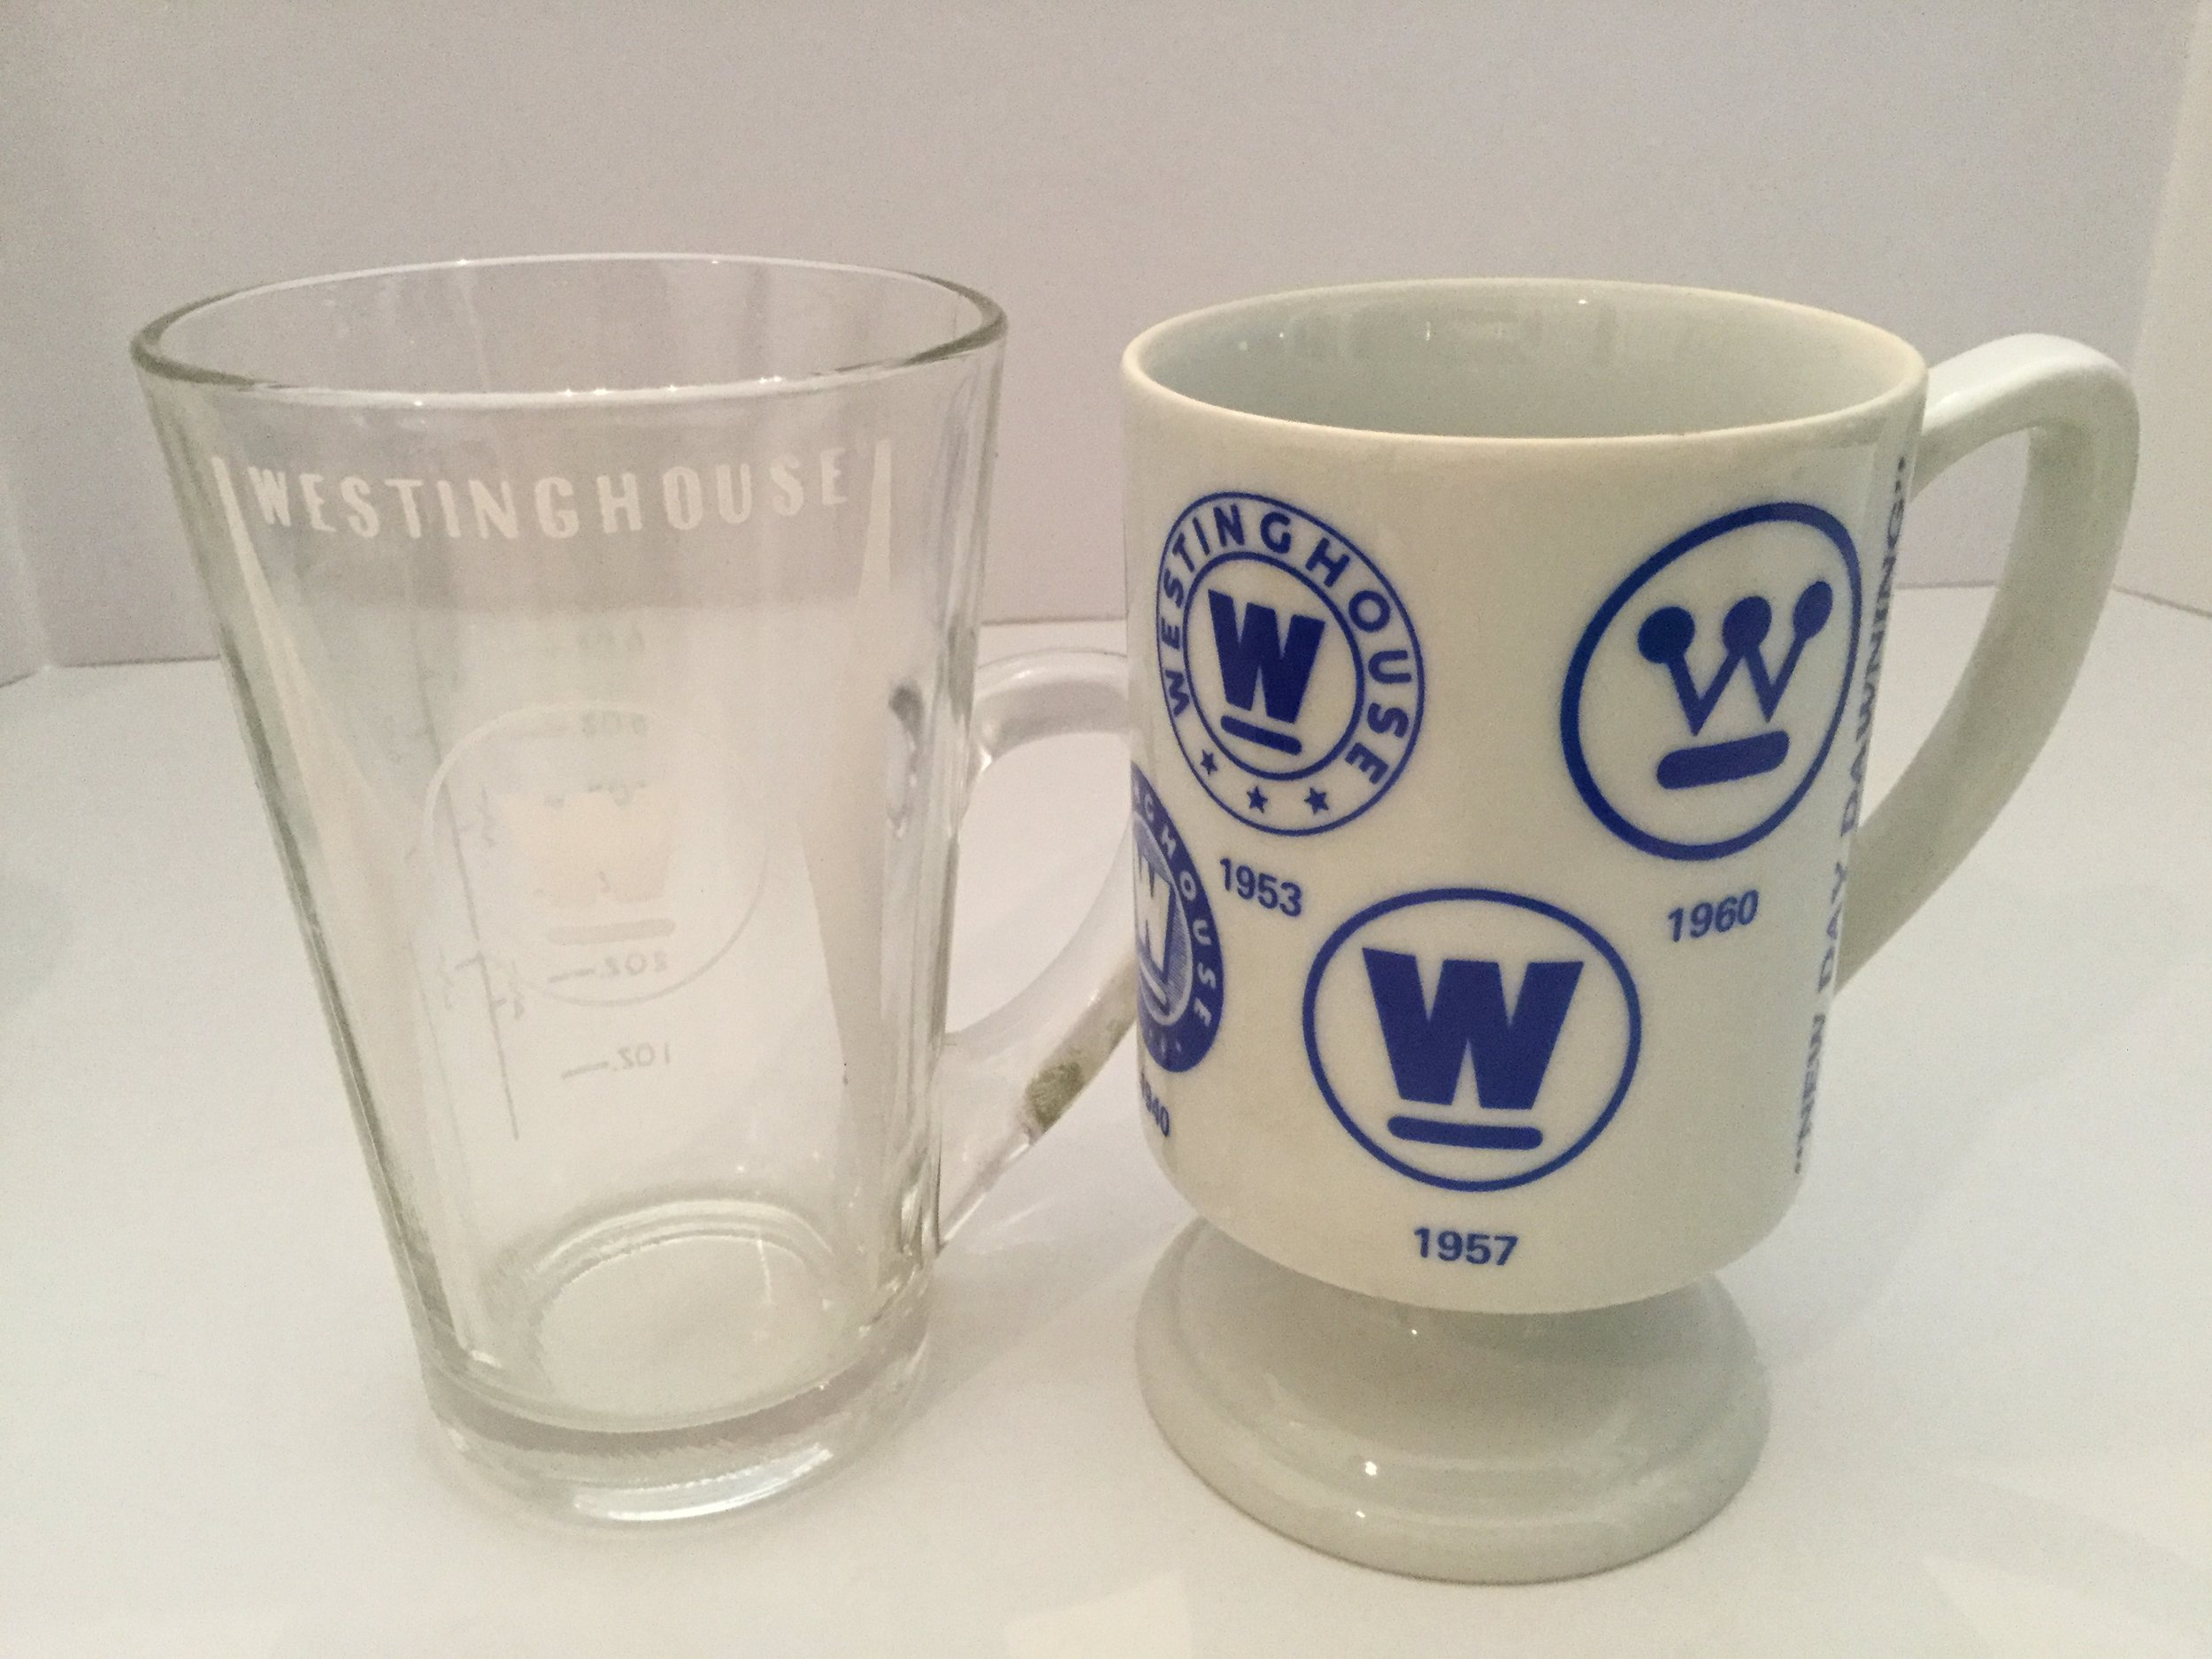 I collected these two mugs.